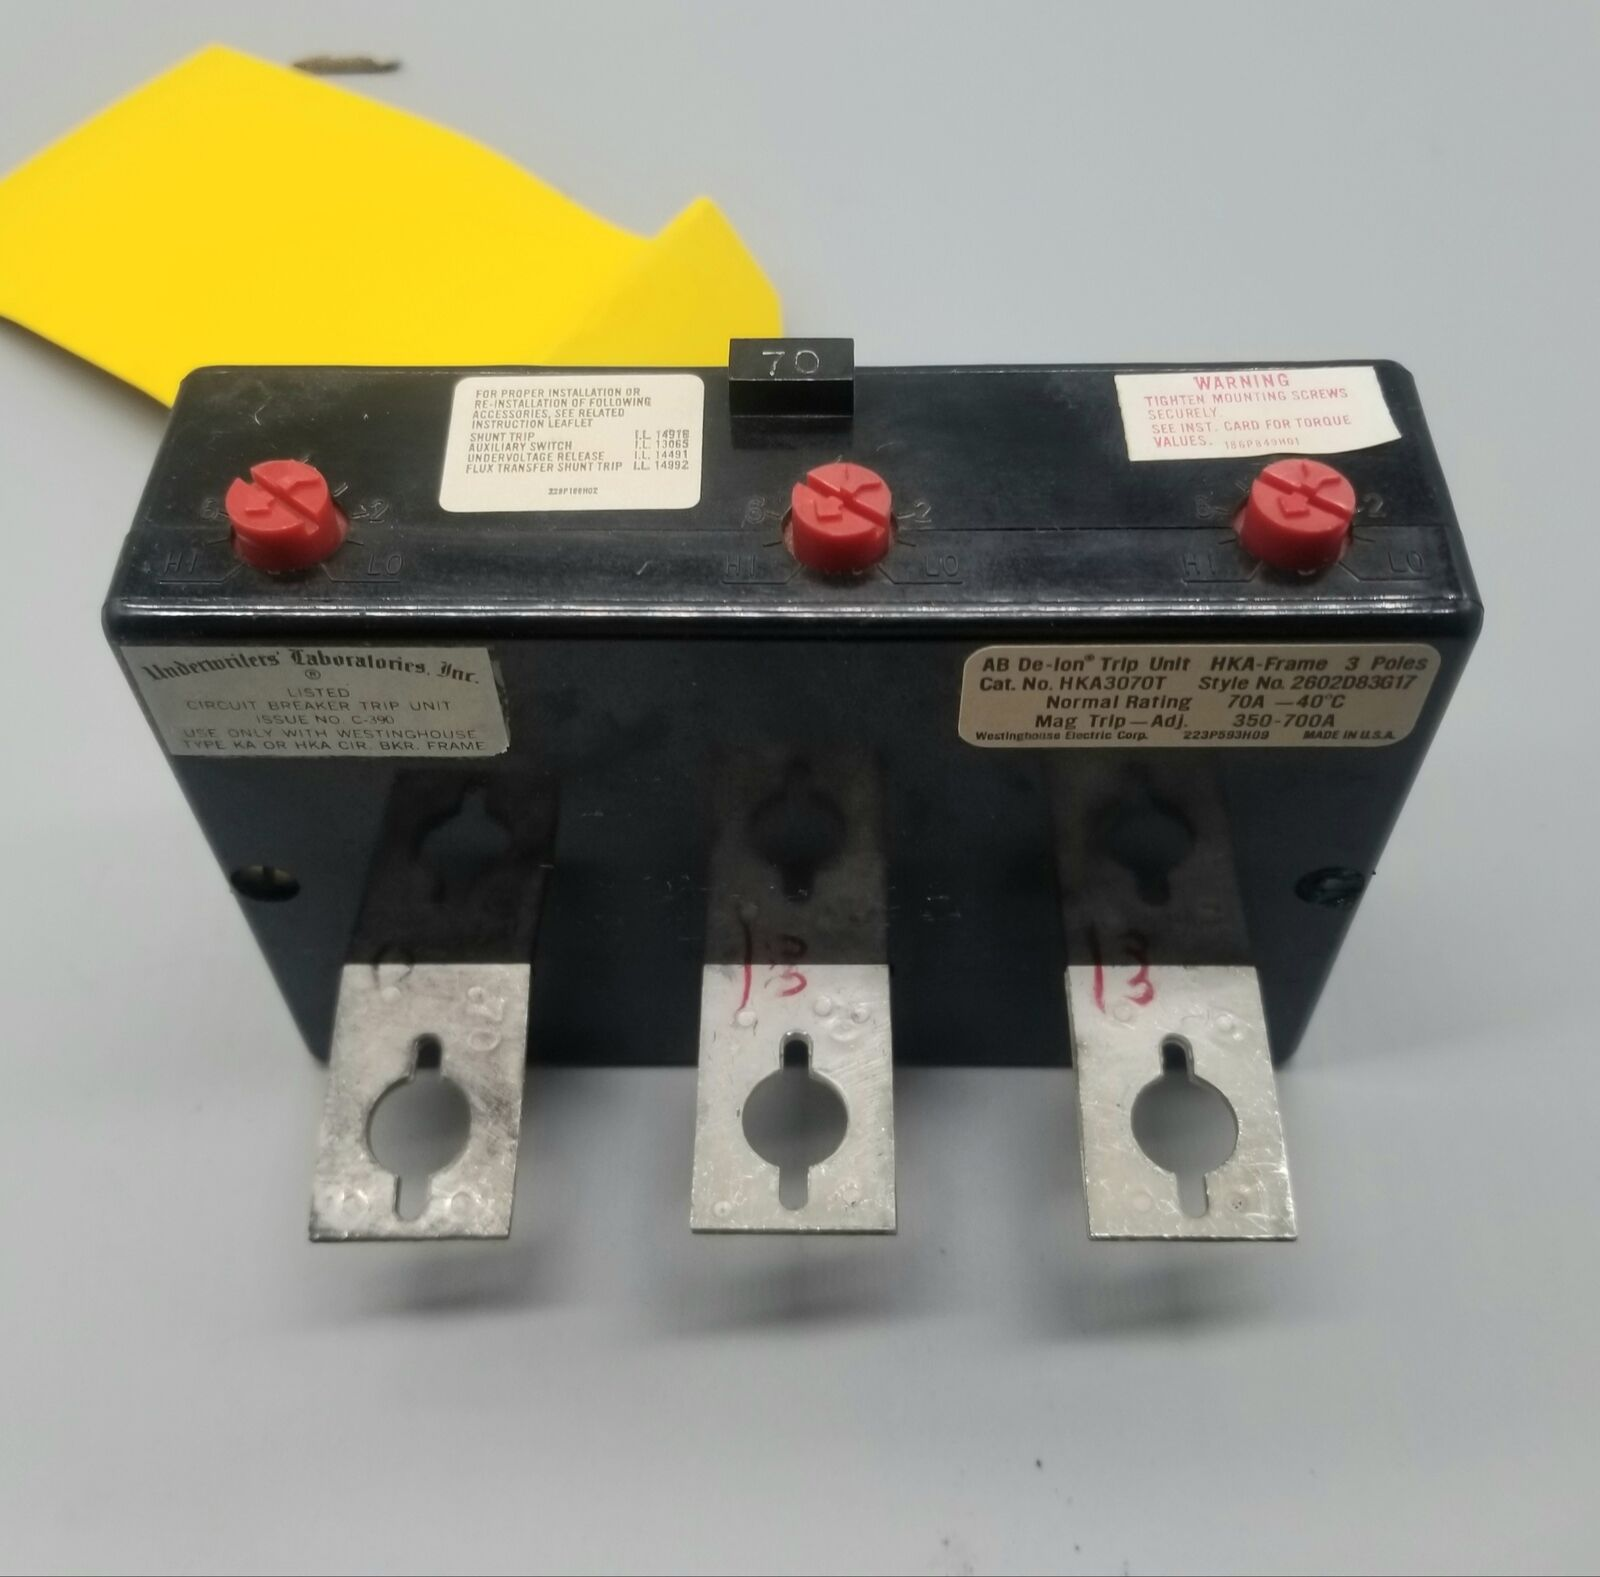 [NEW] Westinghouse HKA3070T Circuit Breaker Trip Unit, 70A